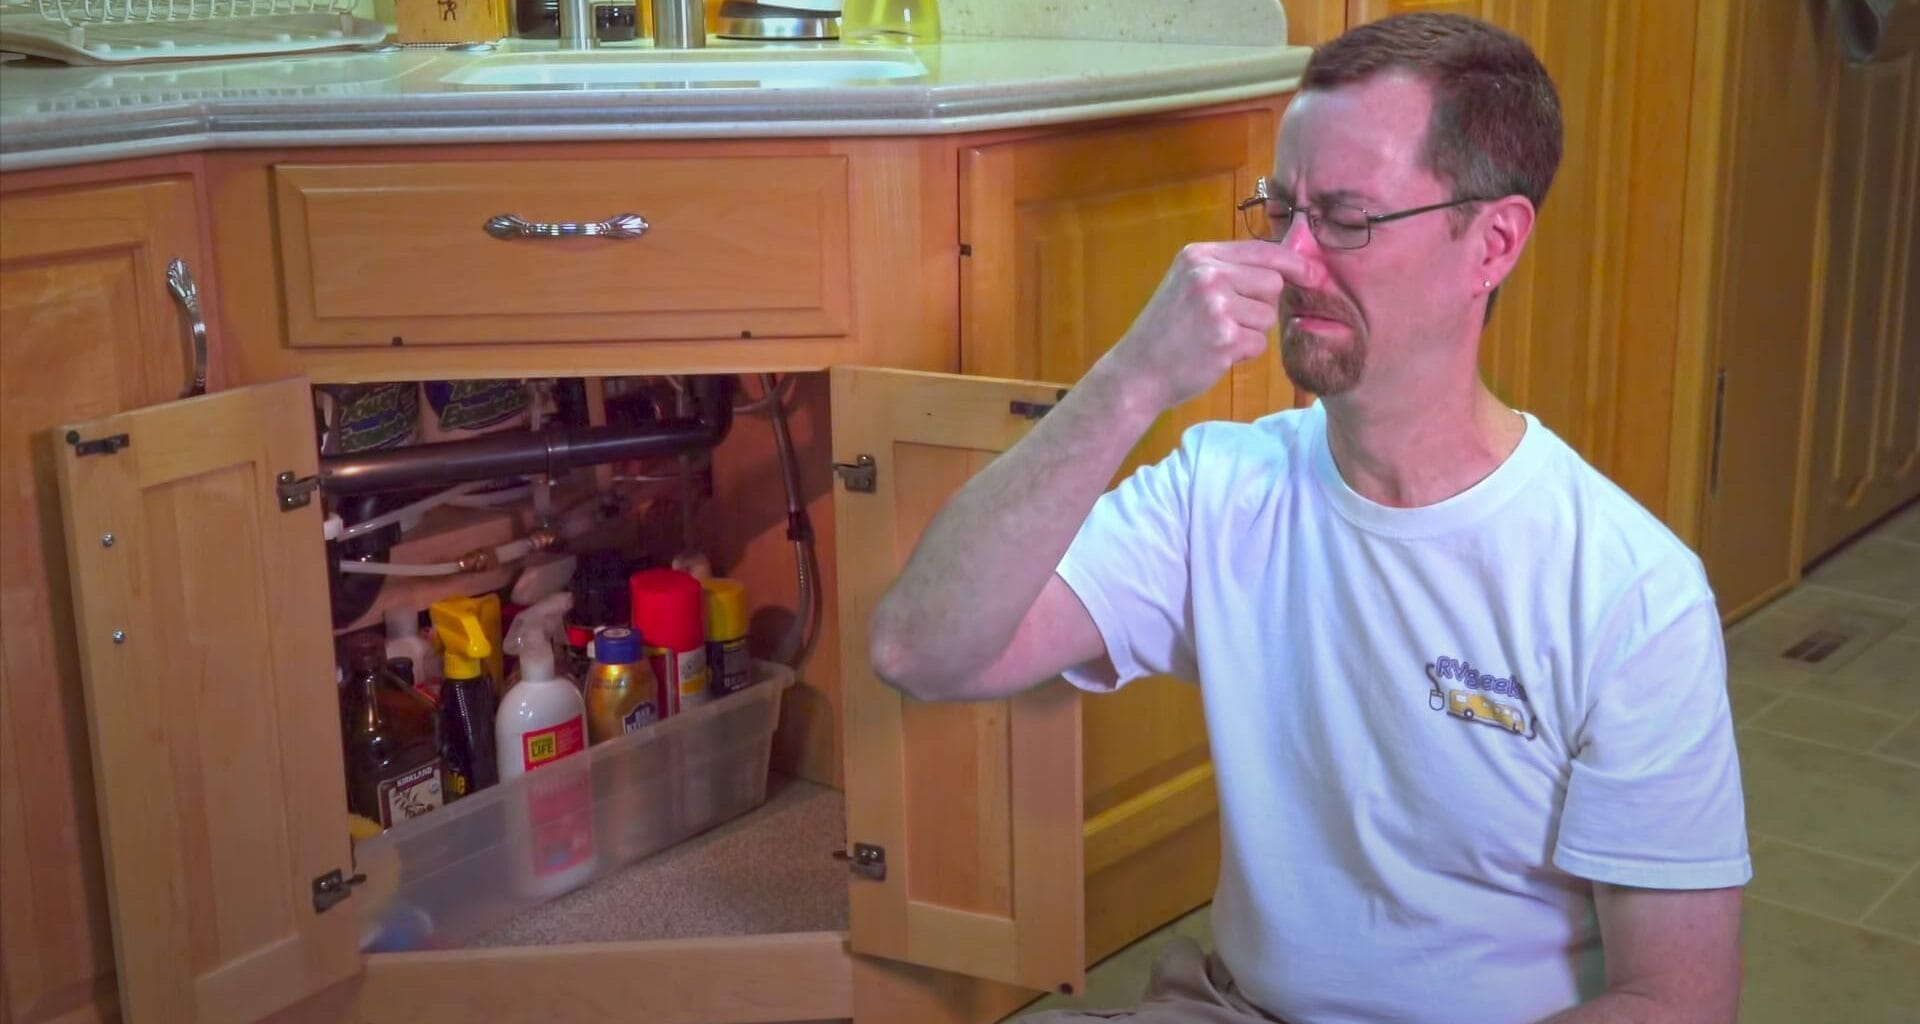 Failure of air admittance valves in your RV's plumbing can cause odors in your RV